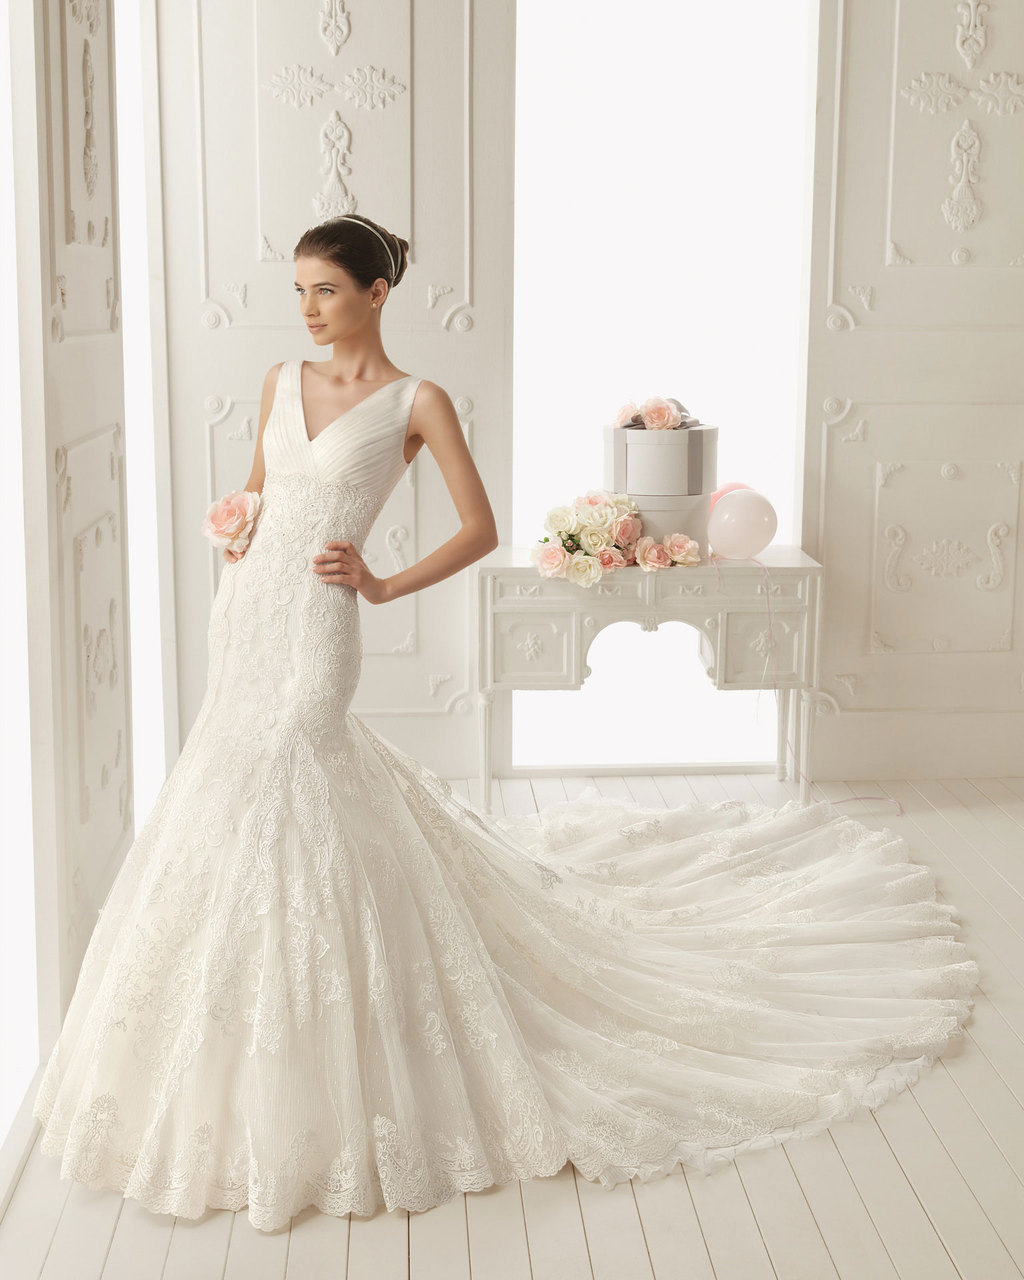 2013-wedding-dress-by-aire-barcelona-bridal-gowns-radiente.full